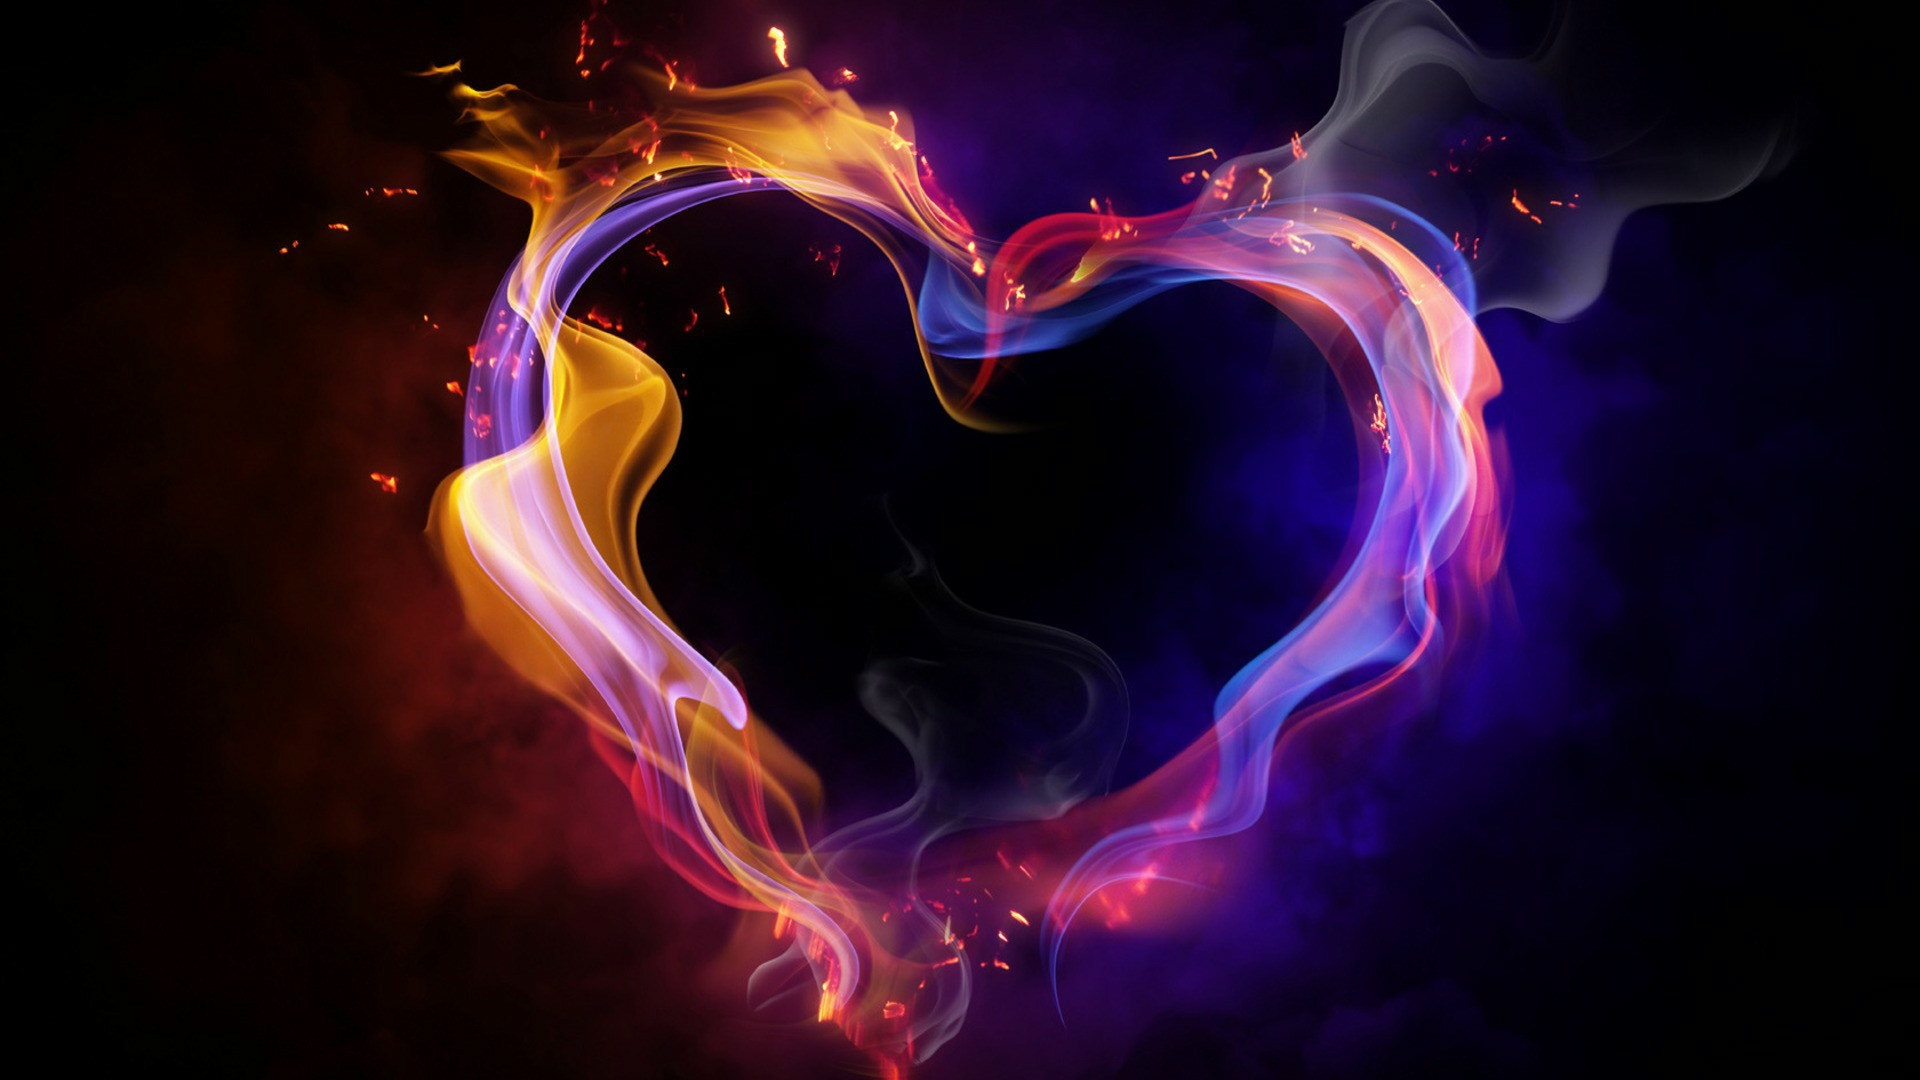 Hd 1920x1080 Cool Color Abstract Heart Desktop Wallpapers Backgrounds 1920x1080